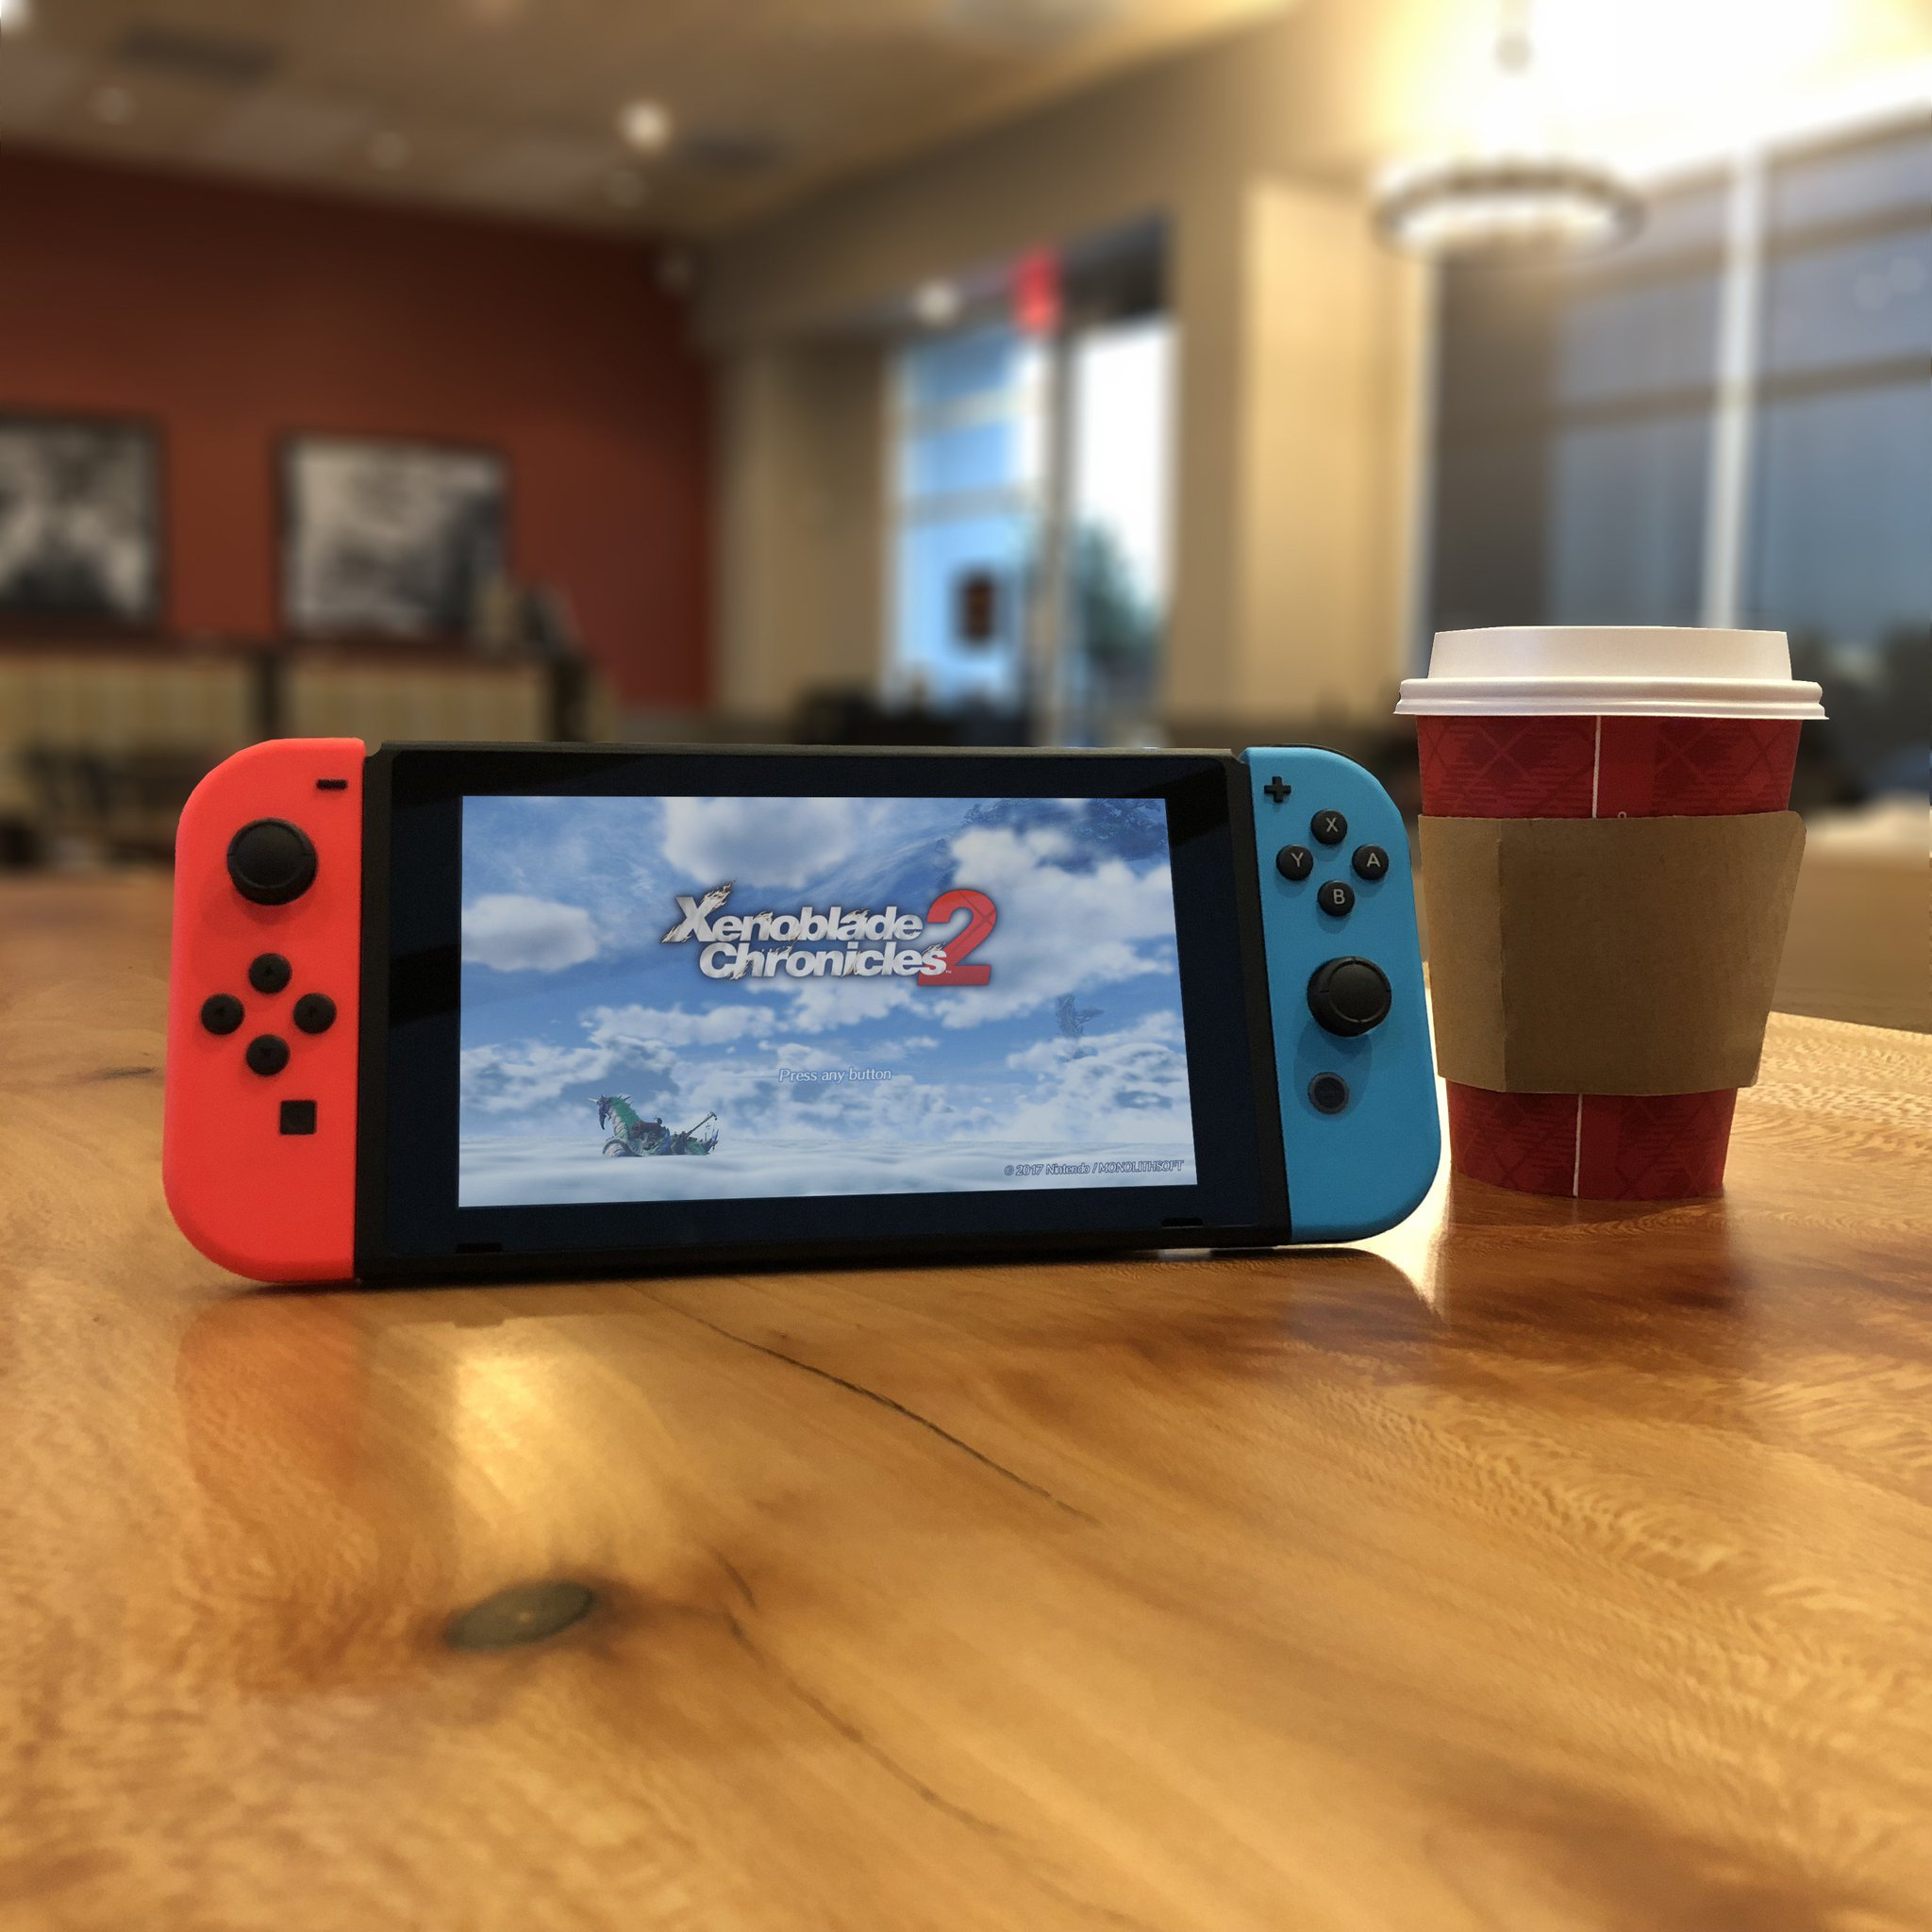 Make the most of your Monday coffee break and take to the skies with #XenobladeChronicles2, only on #NintendoSwitch! https://t.co/8HWkO1ezdp